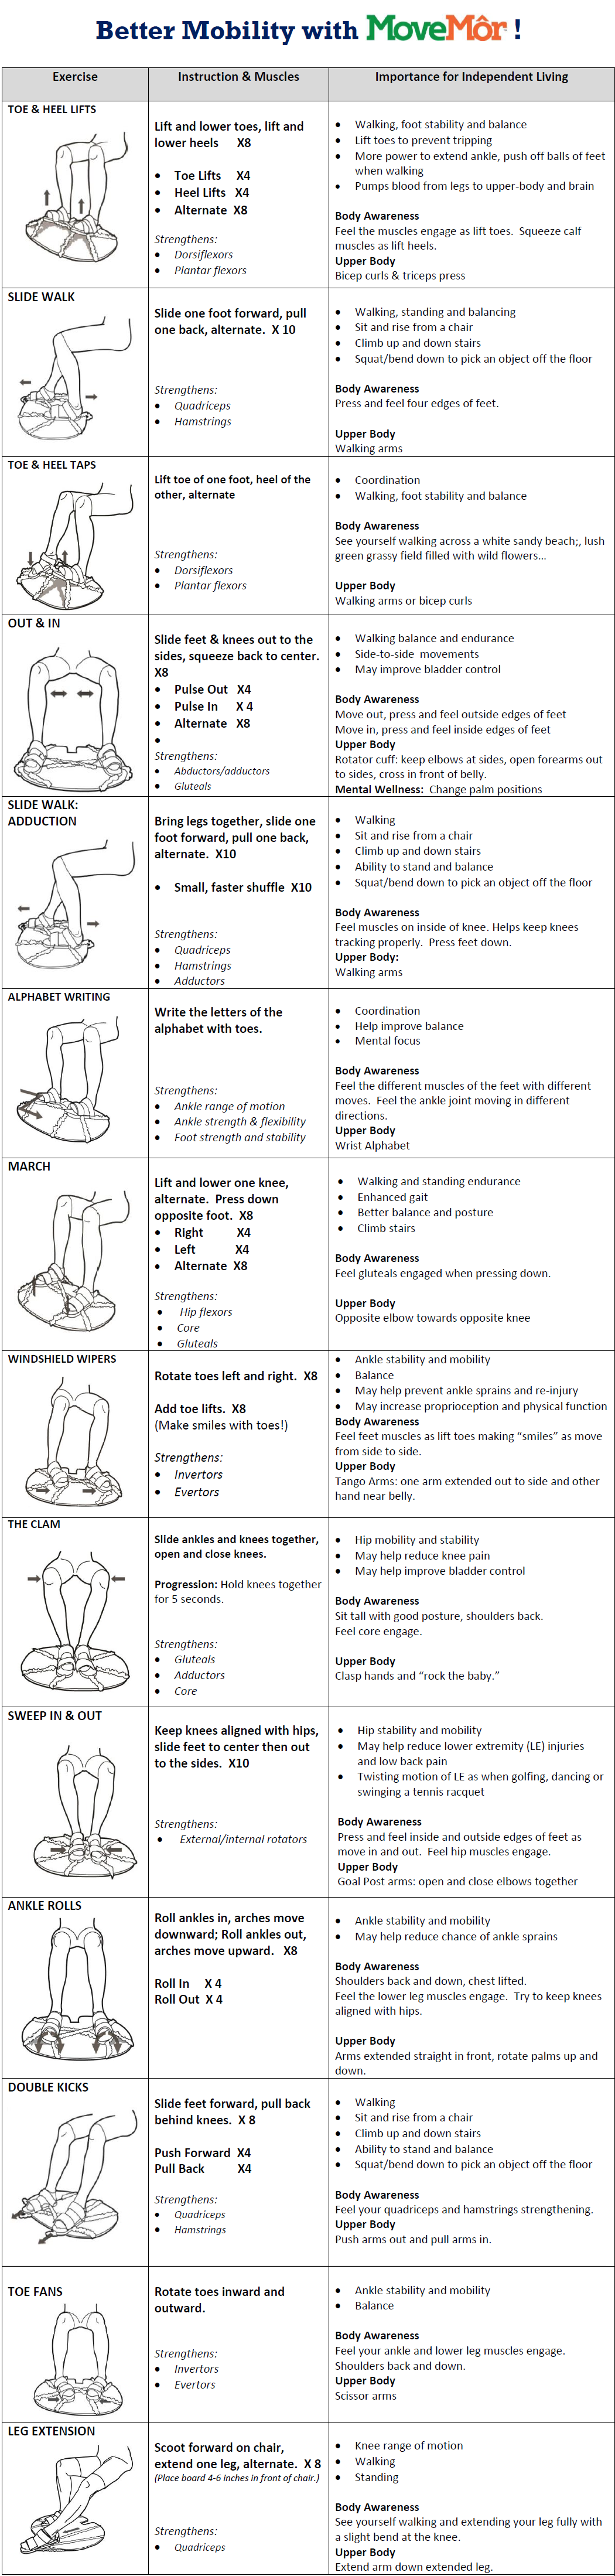 bettermobility-3